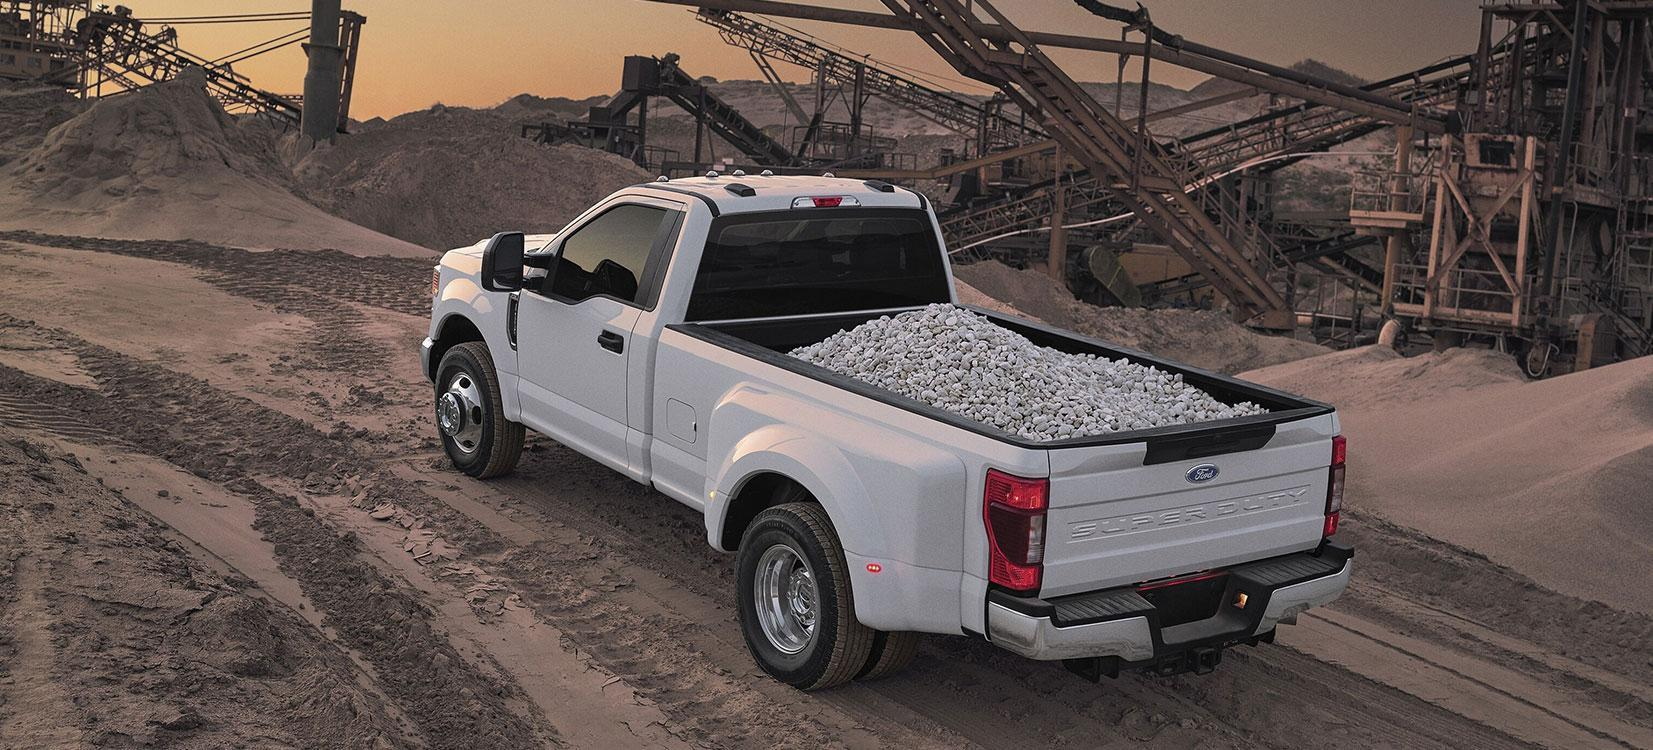 SUPERDUTY COMMERCIAL